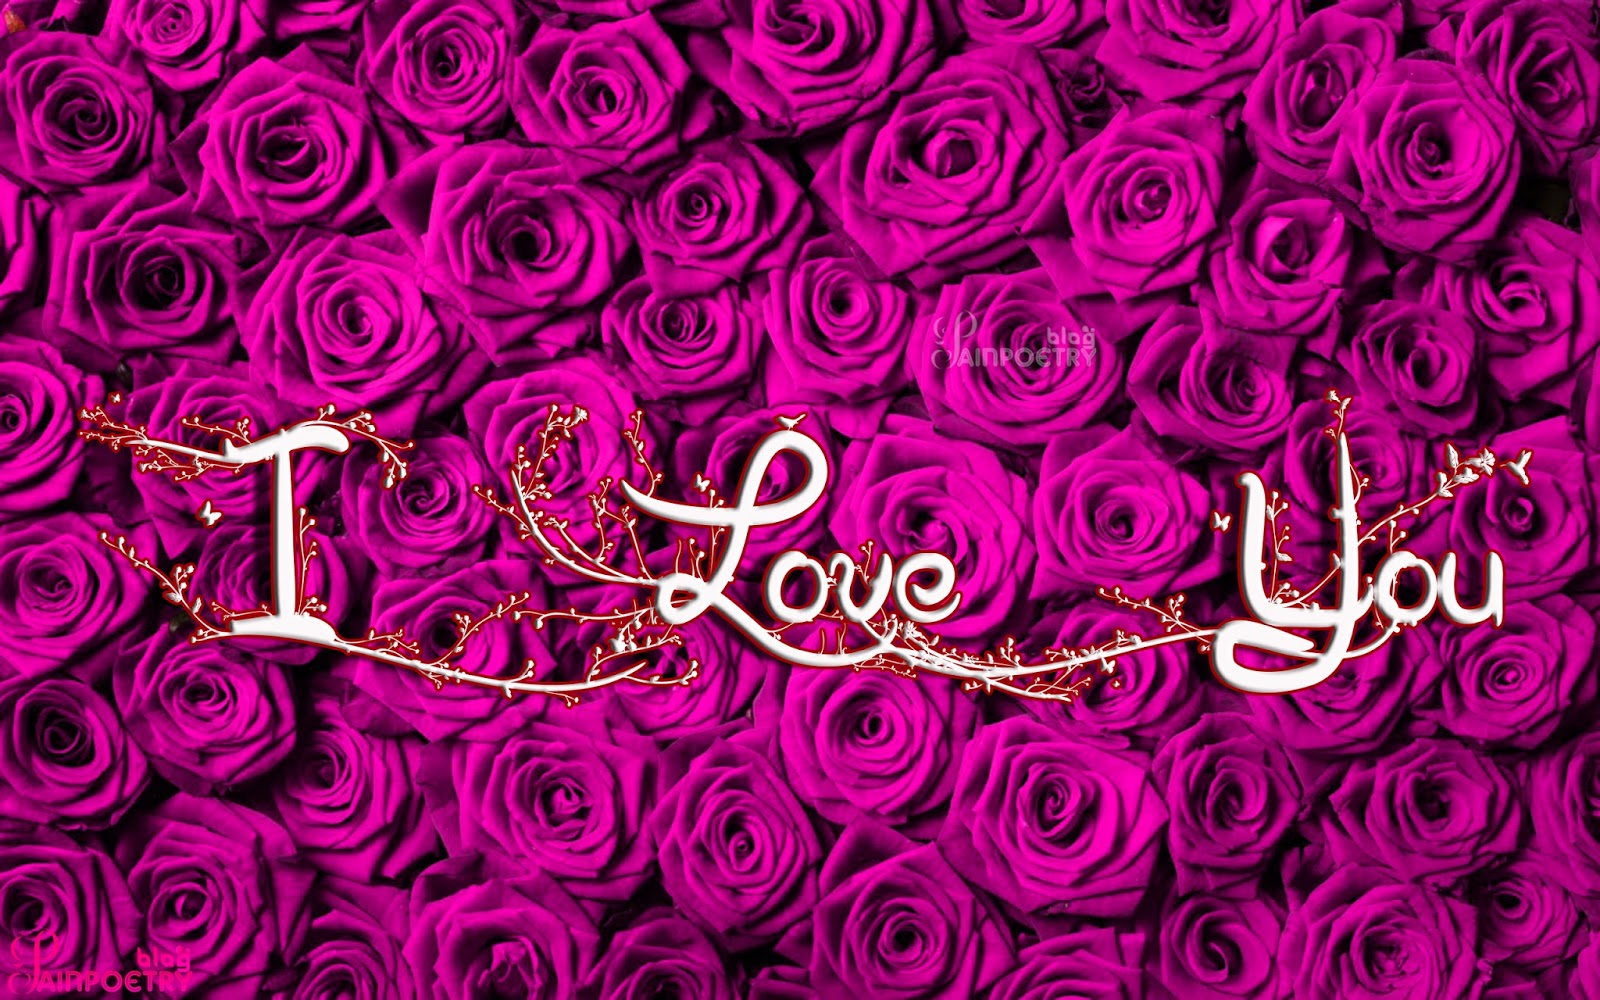 Love-Wallpaper-With-Lot-Of-Flowers-Image-HD-Wide-HD